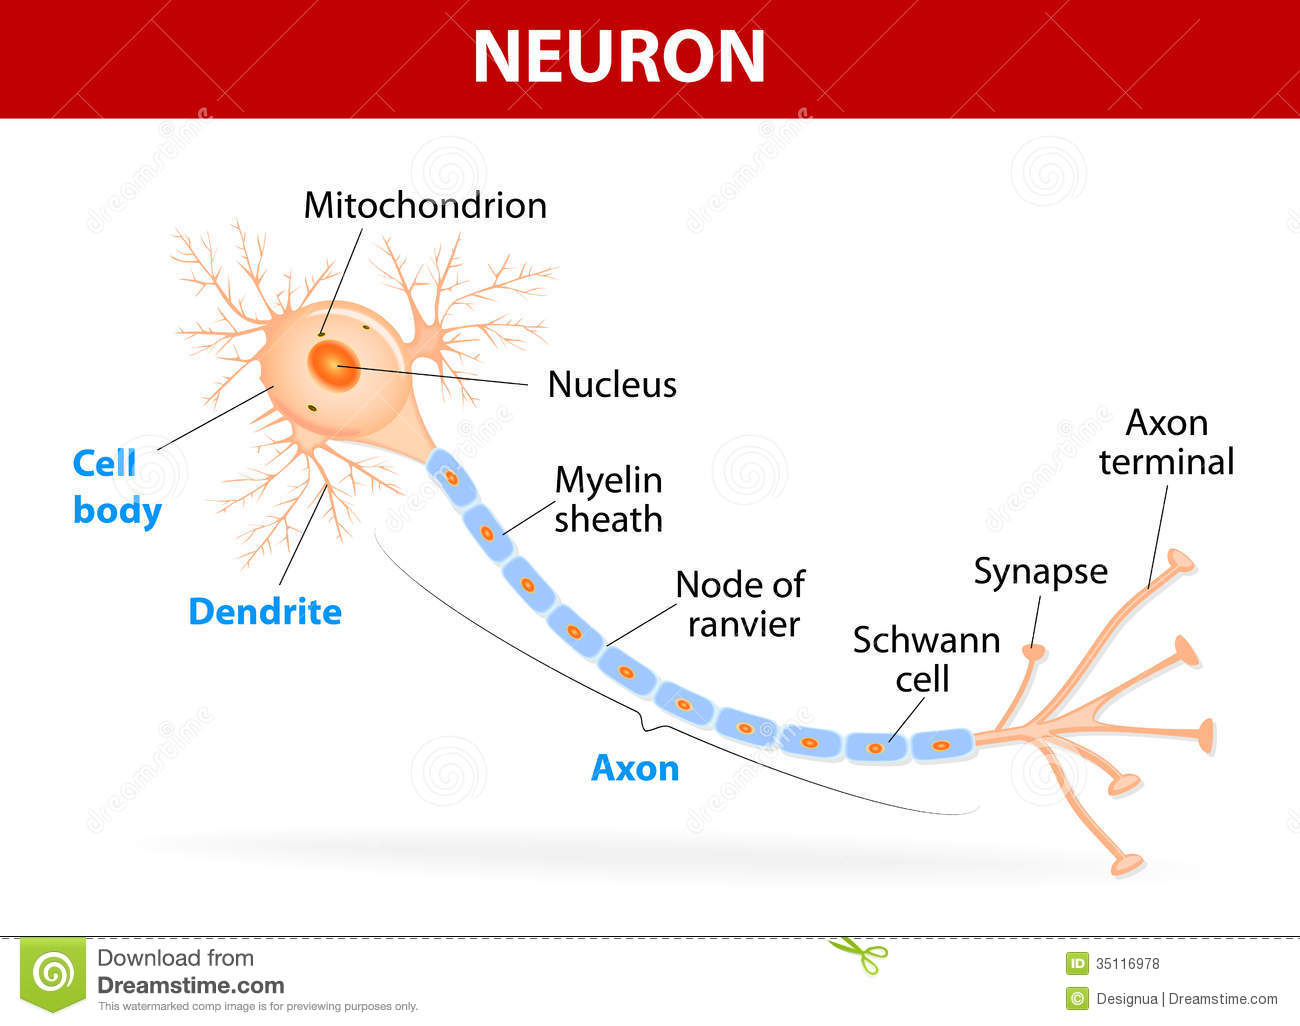 multipolar neuron diagram labeled sets and venn diagrams powerpoint structure of a typical stock vector illustration